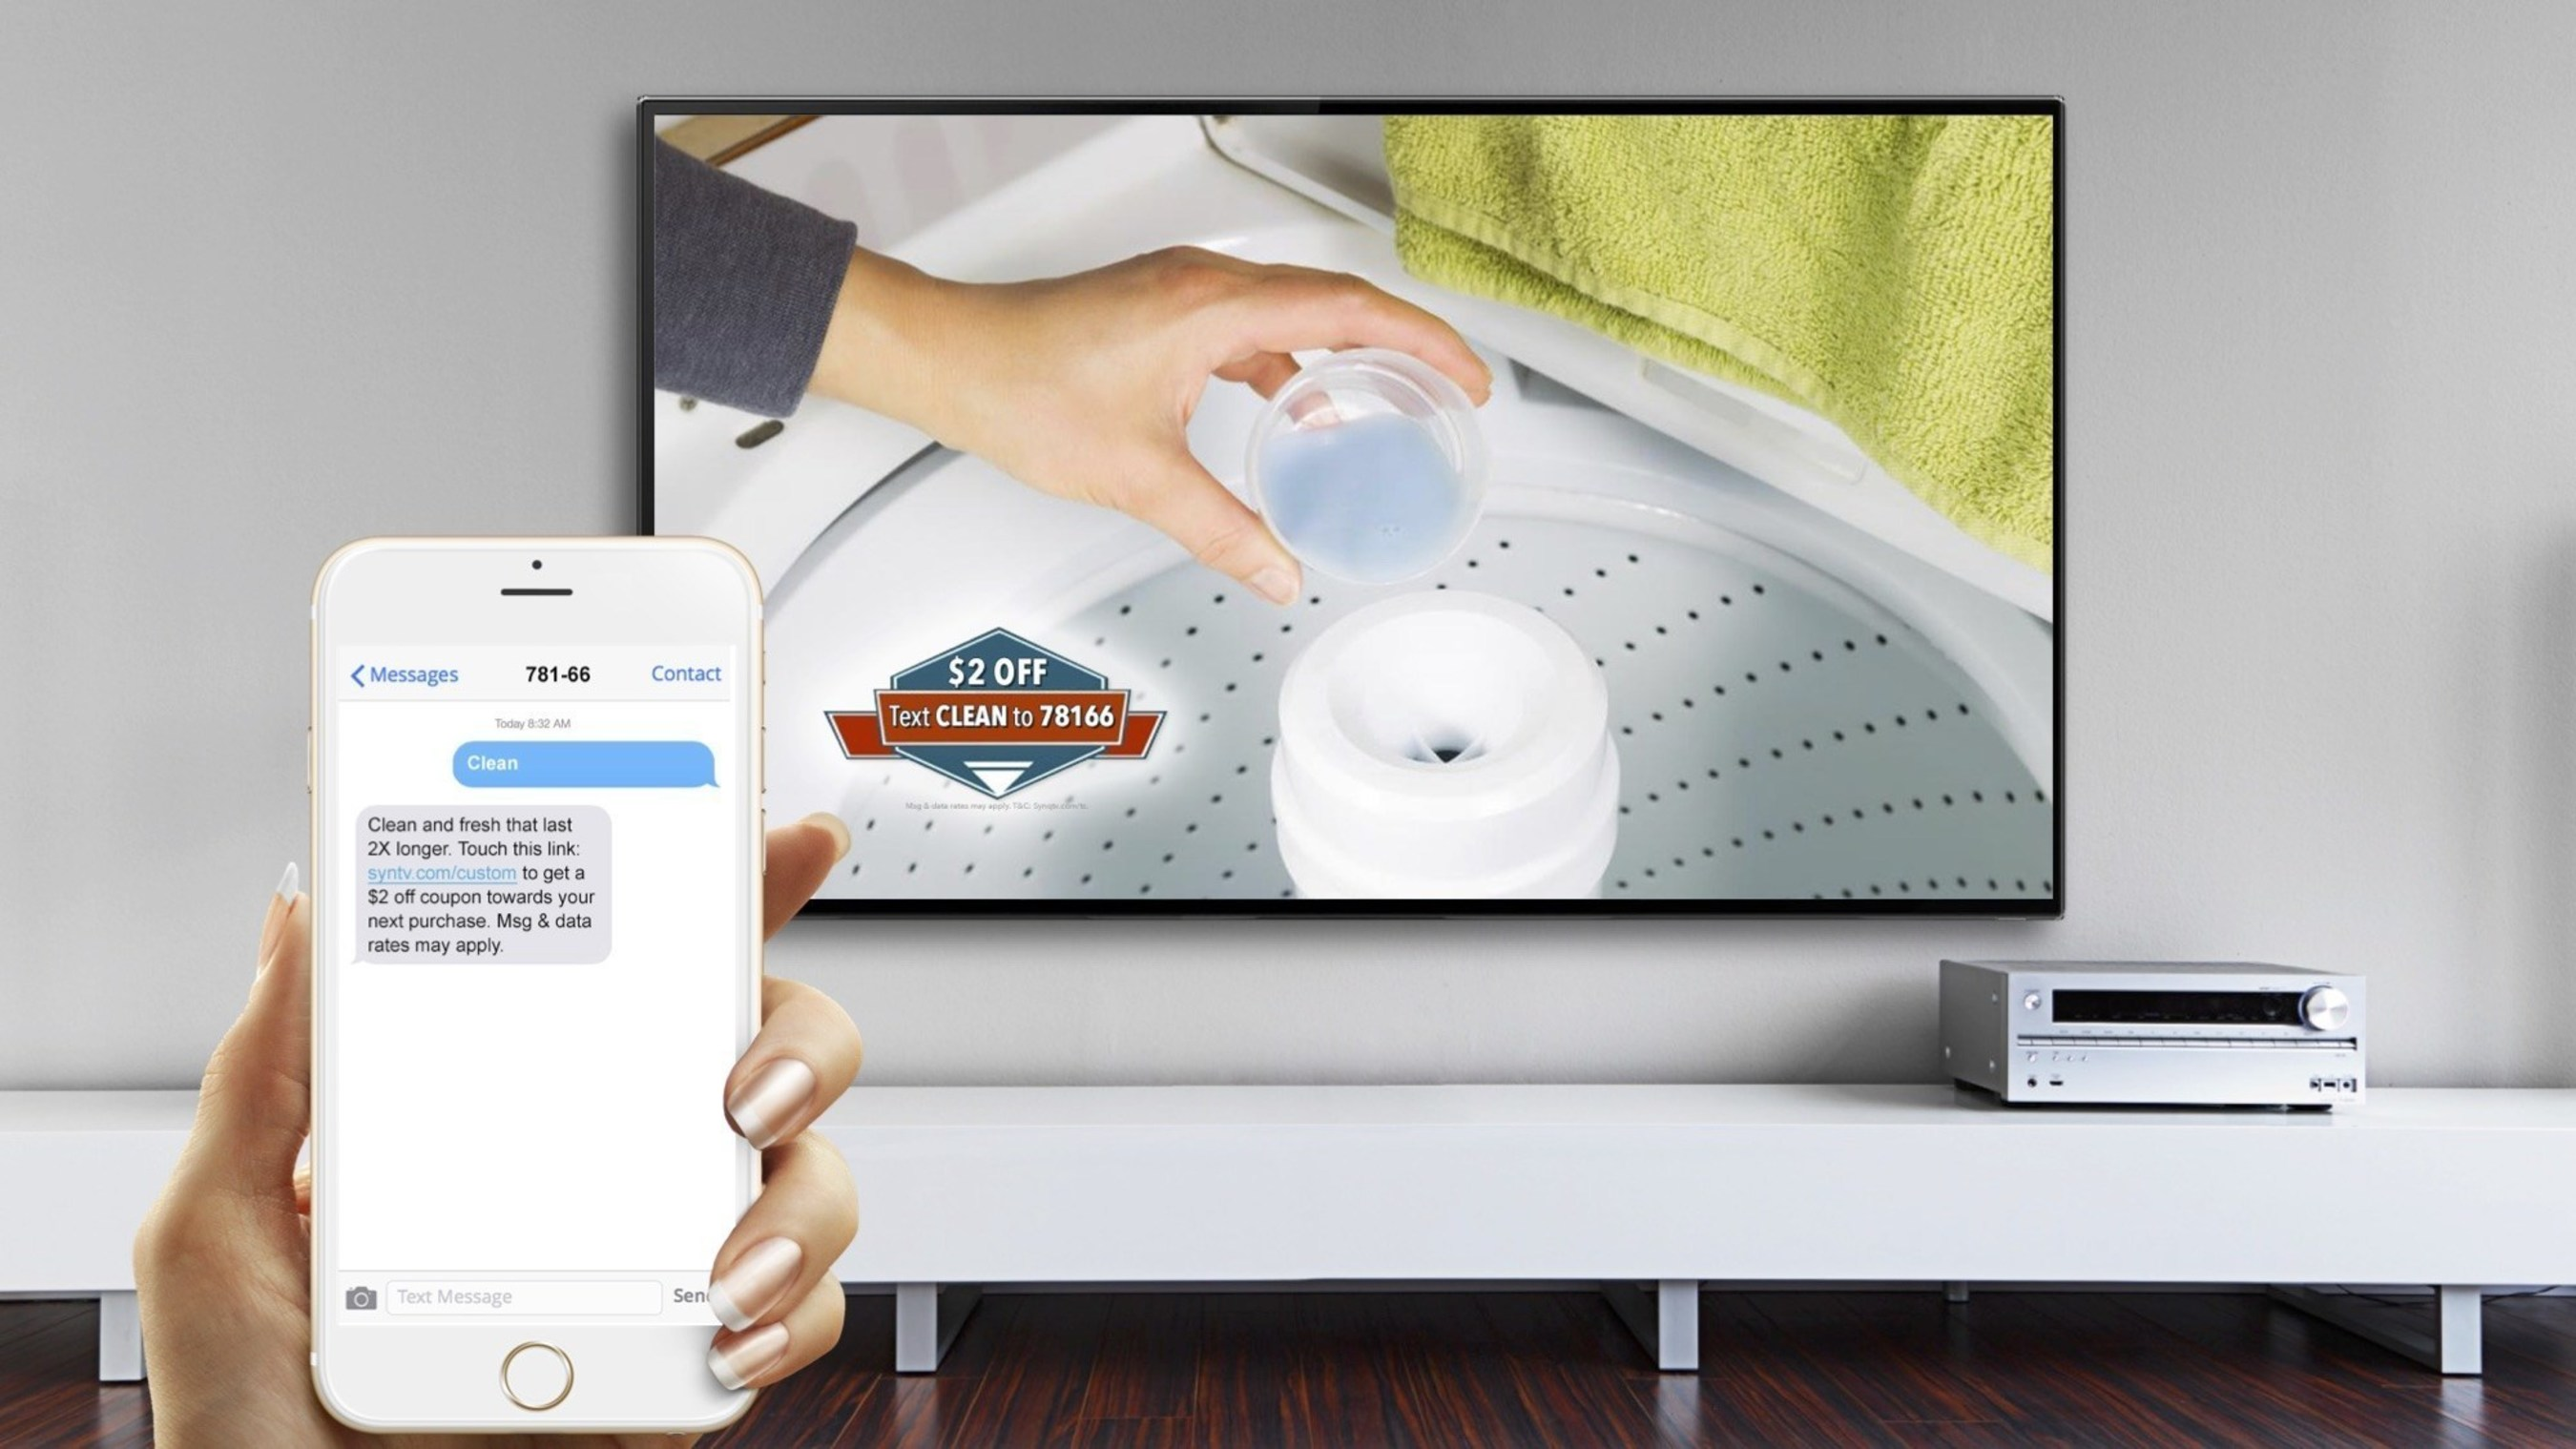 Quotient to Offer Digital Coupons Through National Television Ads